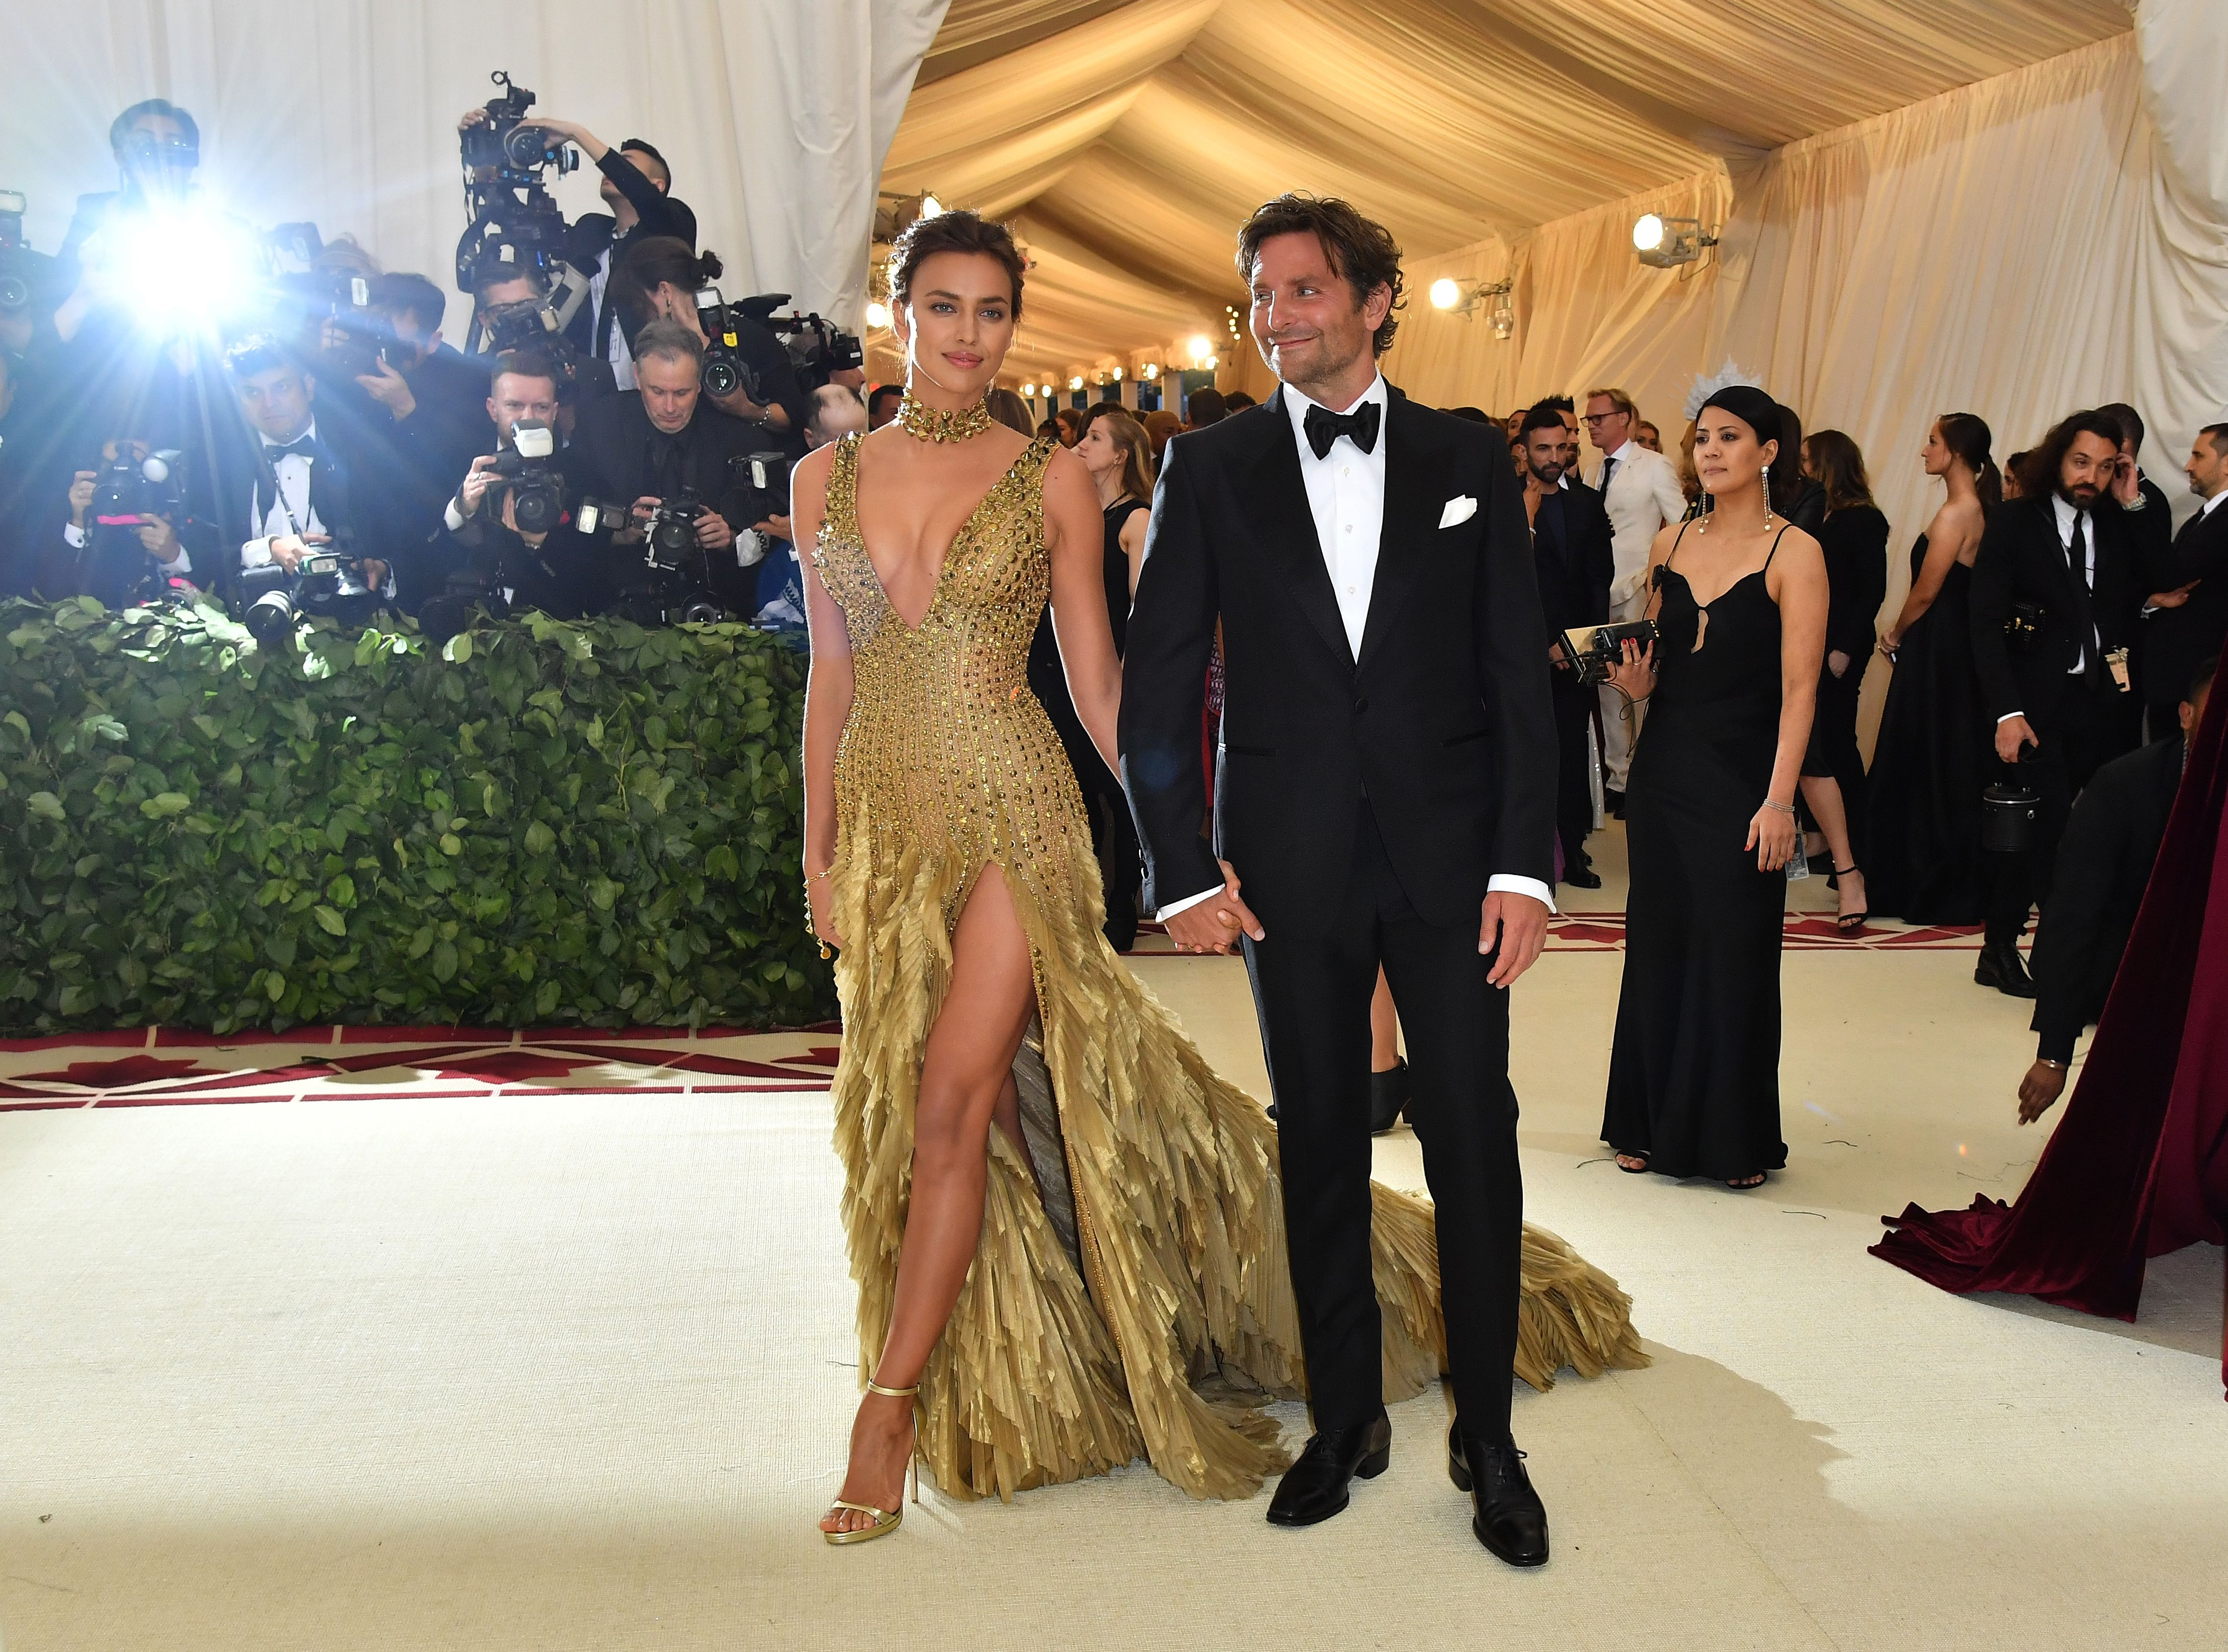 Bradley Cooper and Irina Shayk's relationship 'hanging on by a thread'